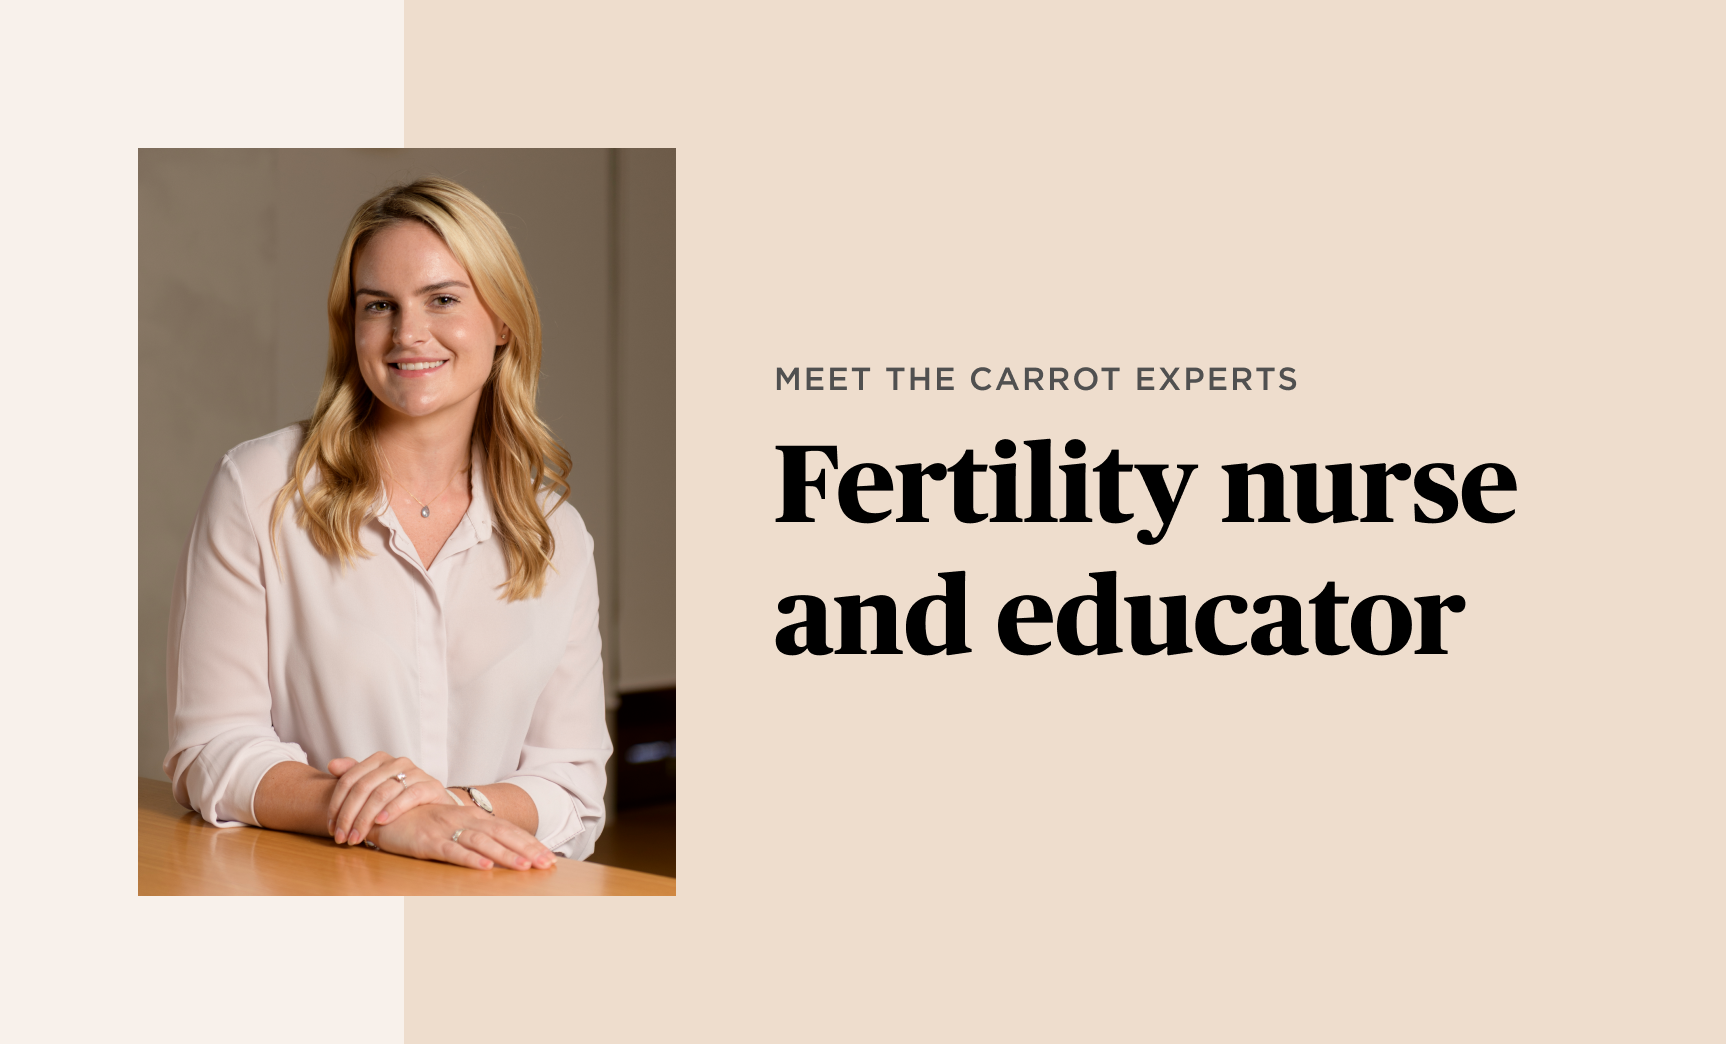 Meet the Carrot Experts: Sarah Lyndon